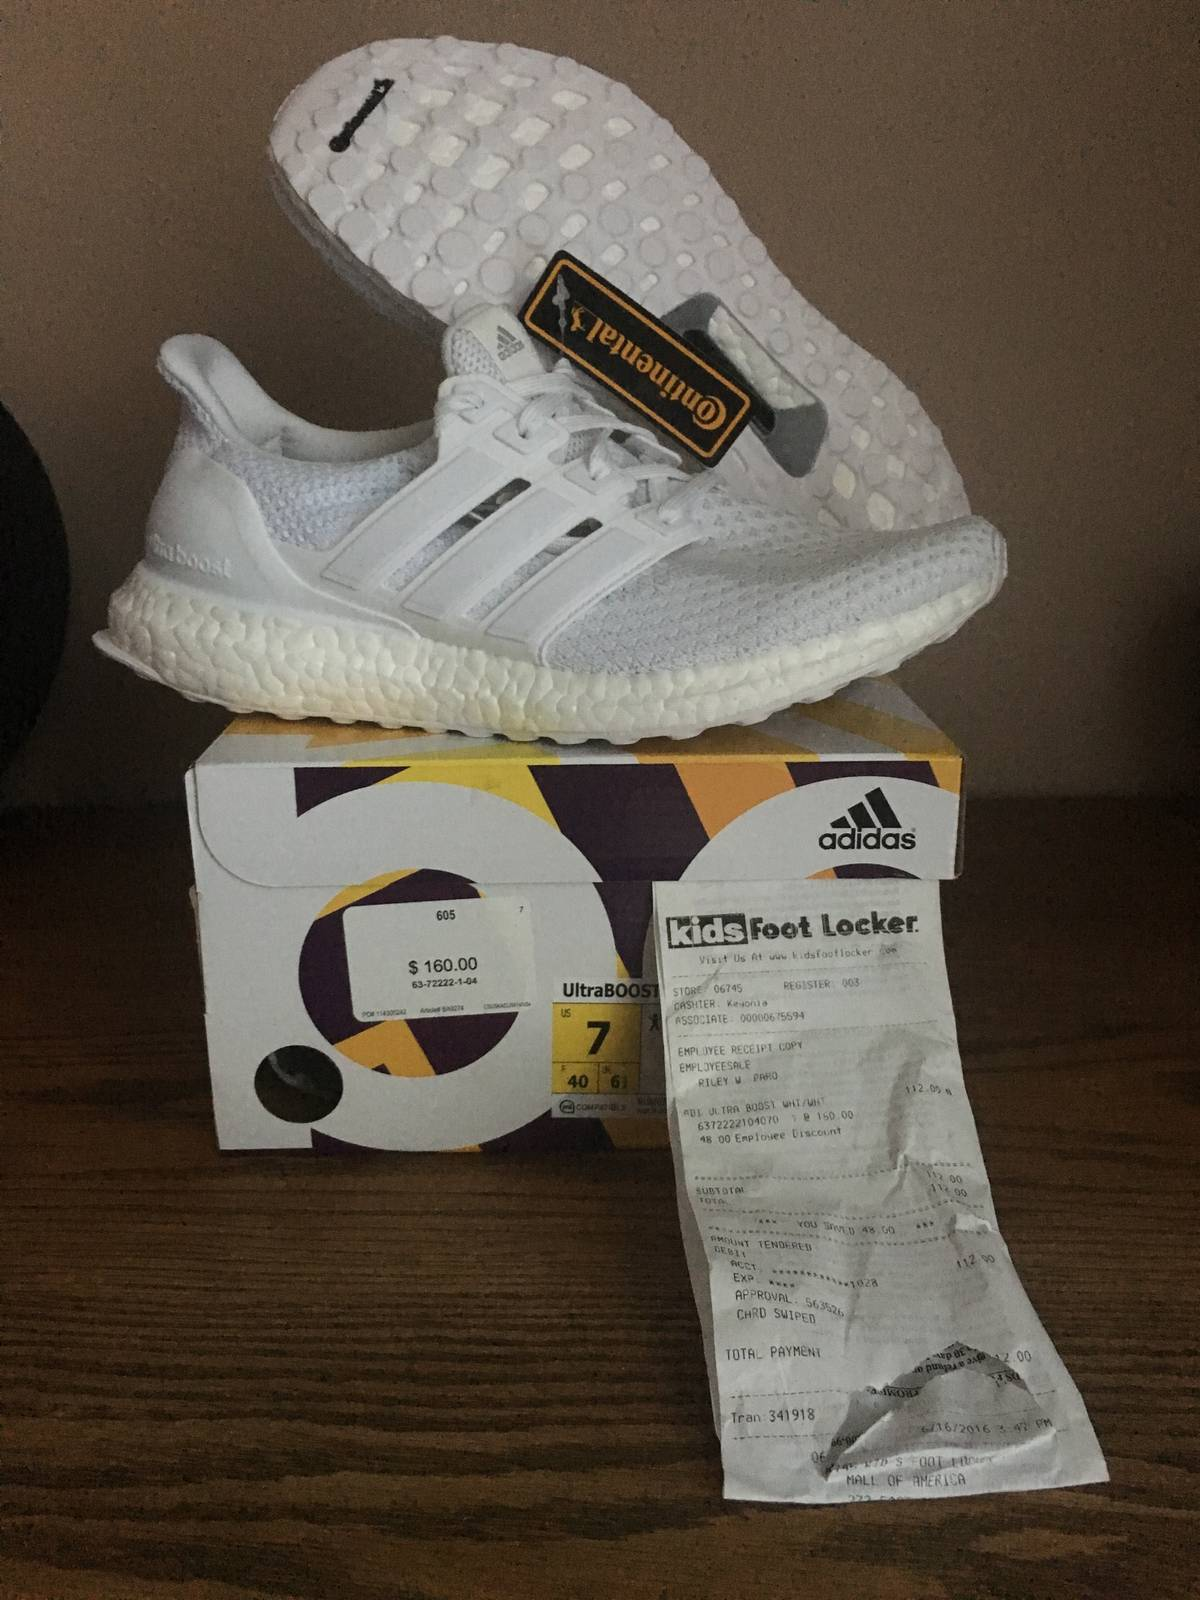 Adidas Adidas Ultra Boost J S80588 All Triple White Junior GS Kids Women 533328f0ba